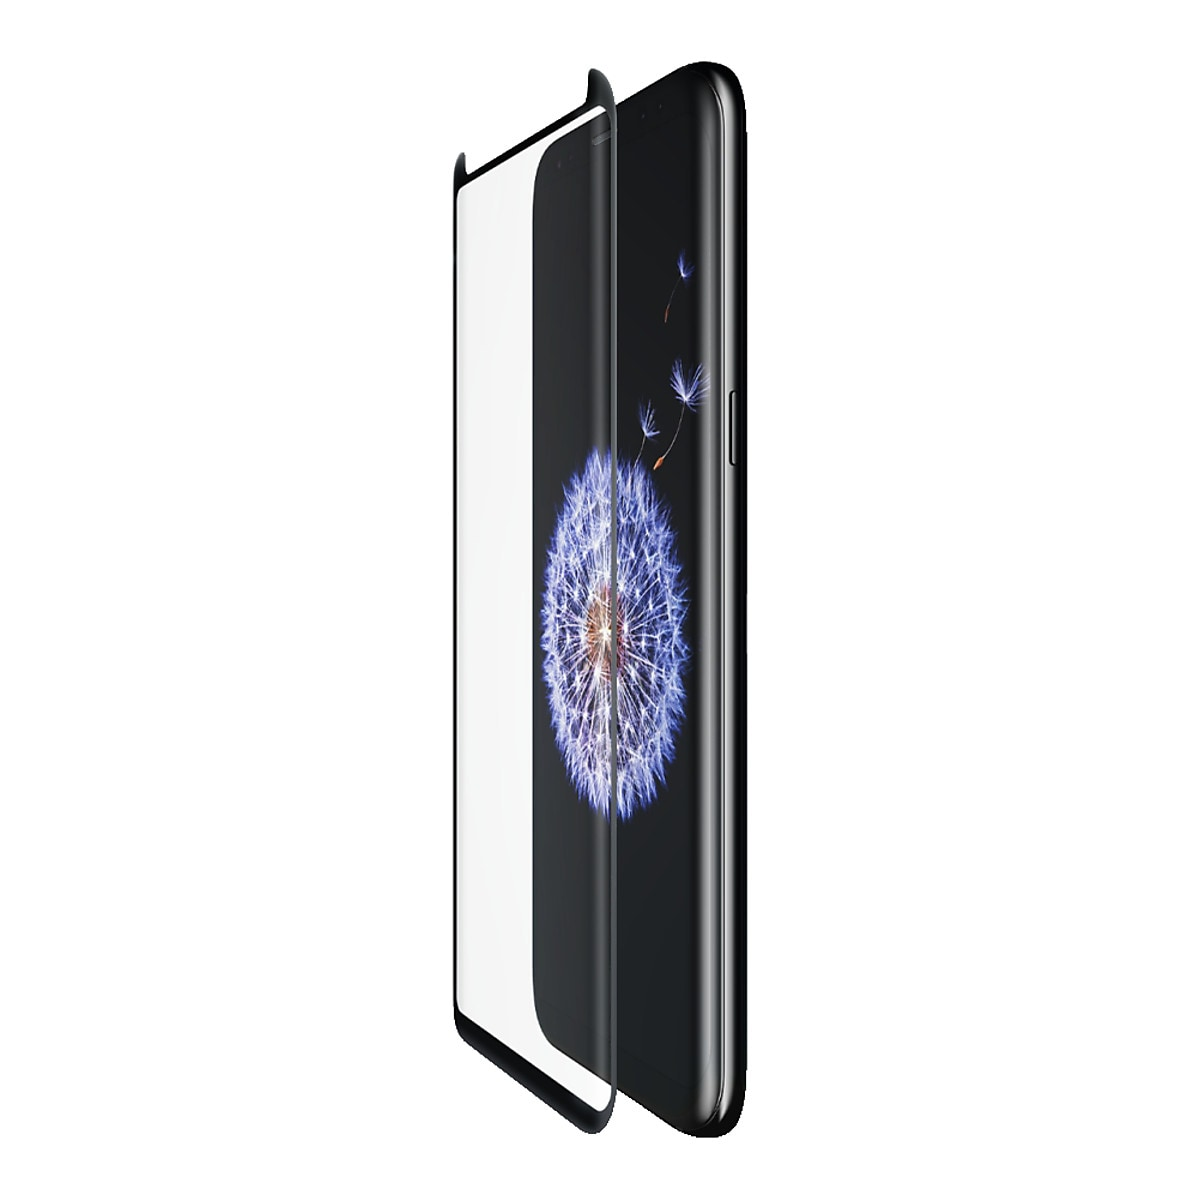 Näytönsuoja Samsung Galaxy S9 Plus, Belkin Screenforce TemperedCurve